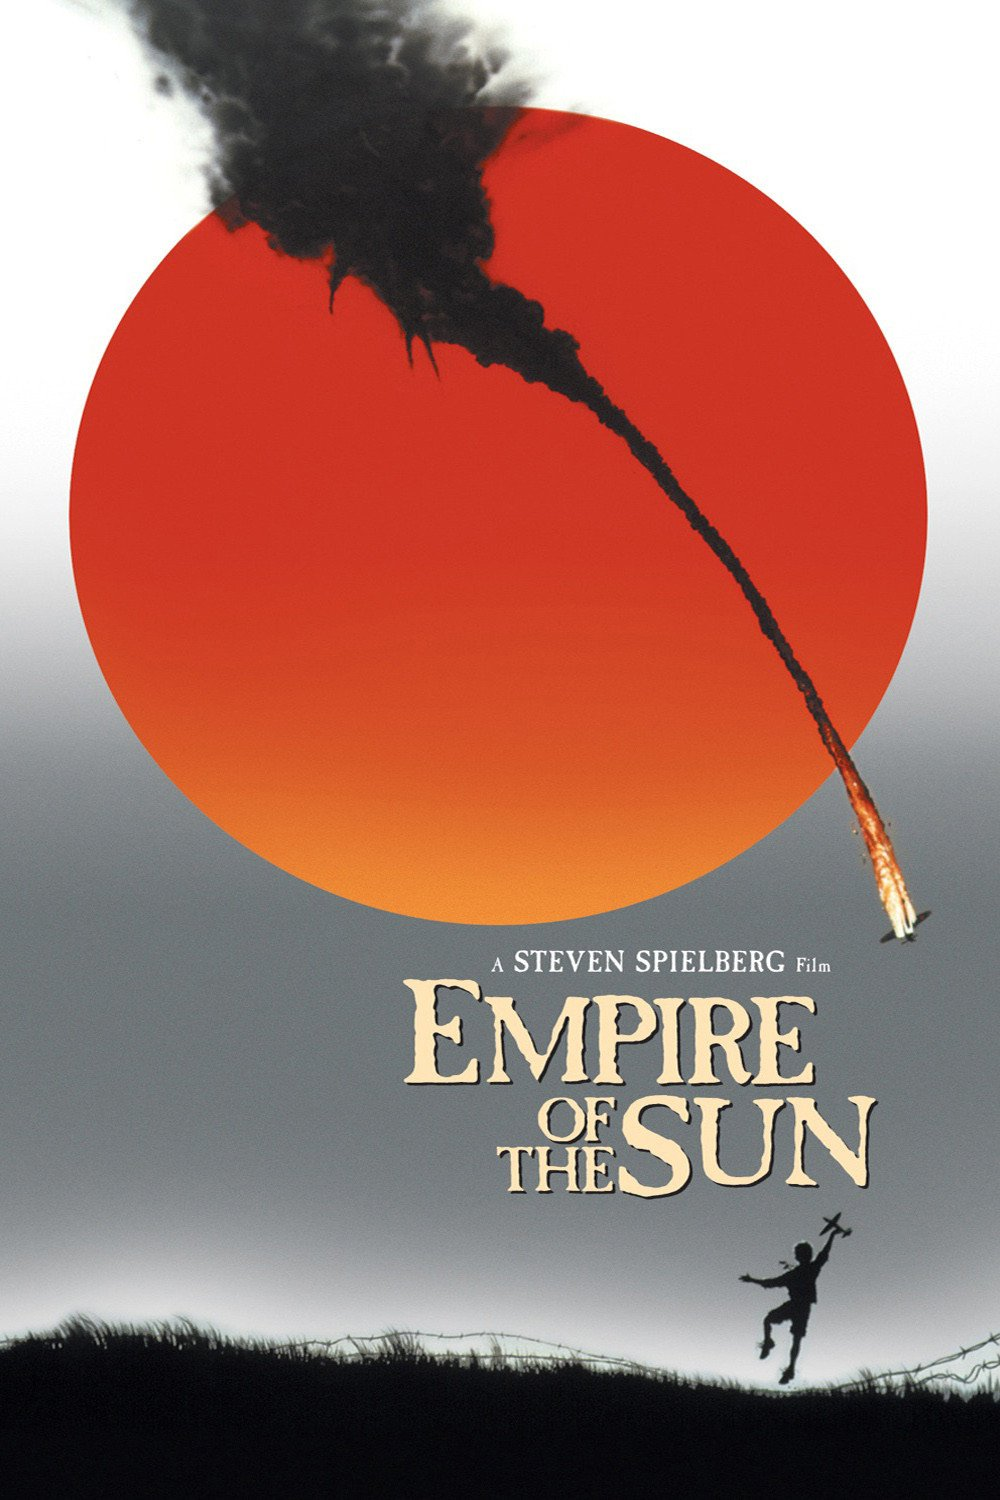 steven spielbergs empire of the sun essay The empire of the sun phenomenon can be highlighted for some as the actor christian bale's finest hour certainly, his career has been scattered with incredible performances, yet it is arguably his portrayal of the 11 year old jim, in the film empire of the sun, that sets him apart form any other actor, specifically child-actors.